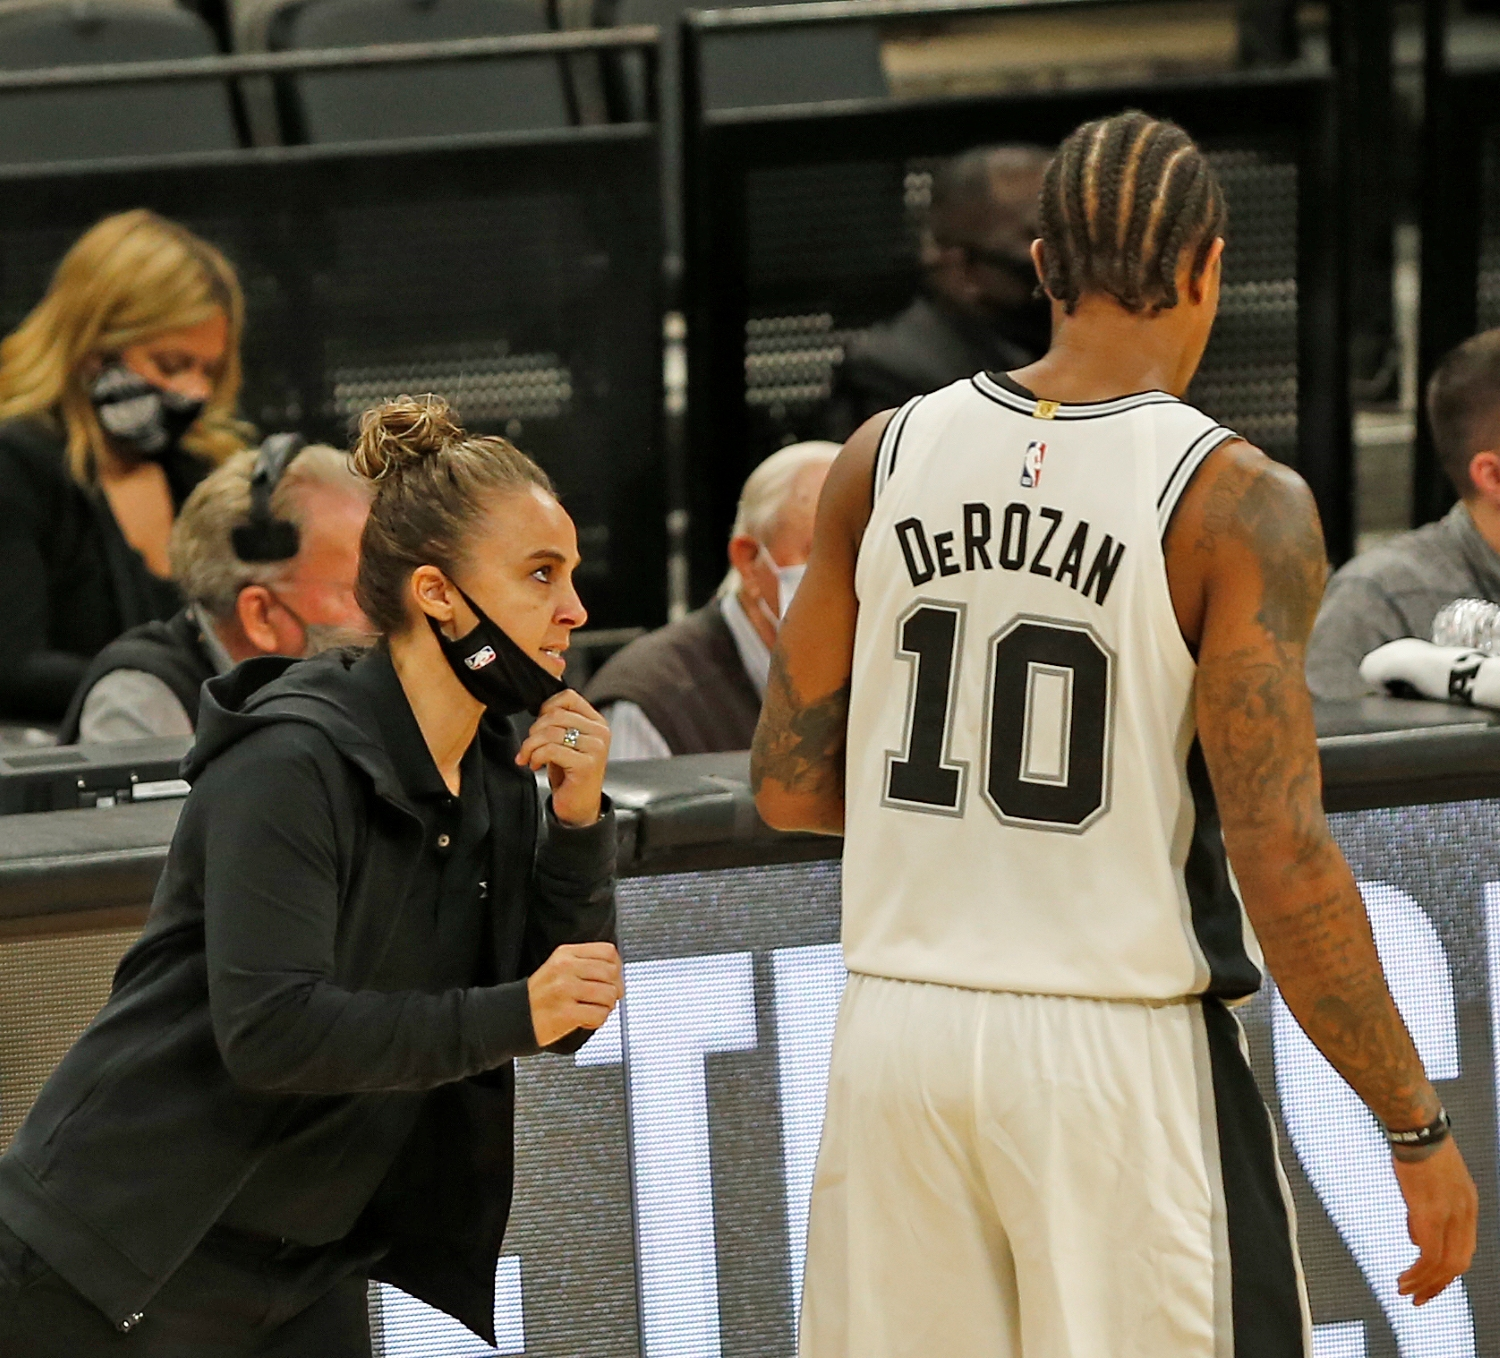 Becky Hammon took over for Greg Popovich after he was ejected in Wednesday's game, making NBA history in the process.